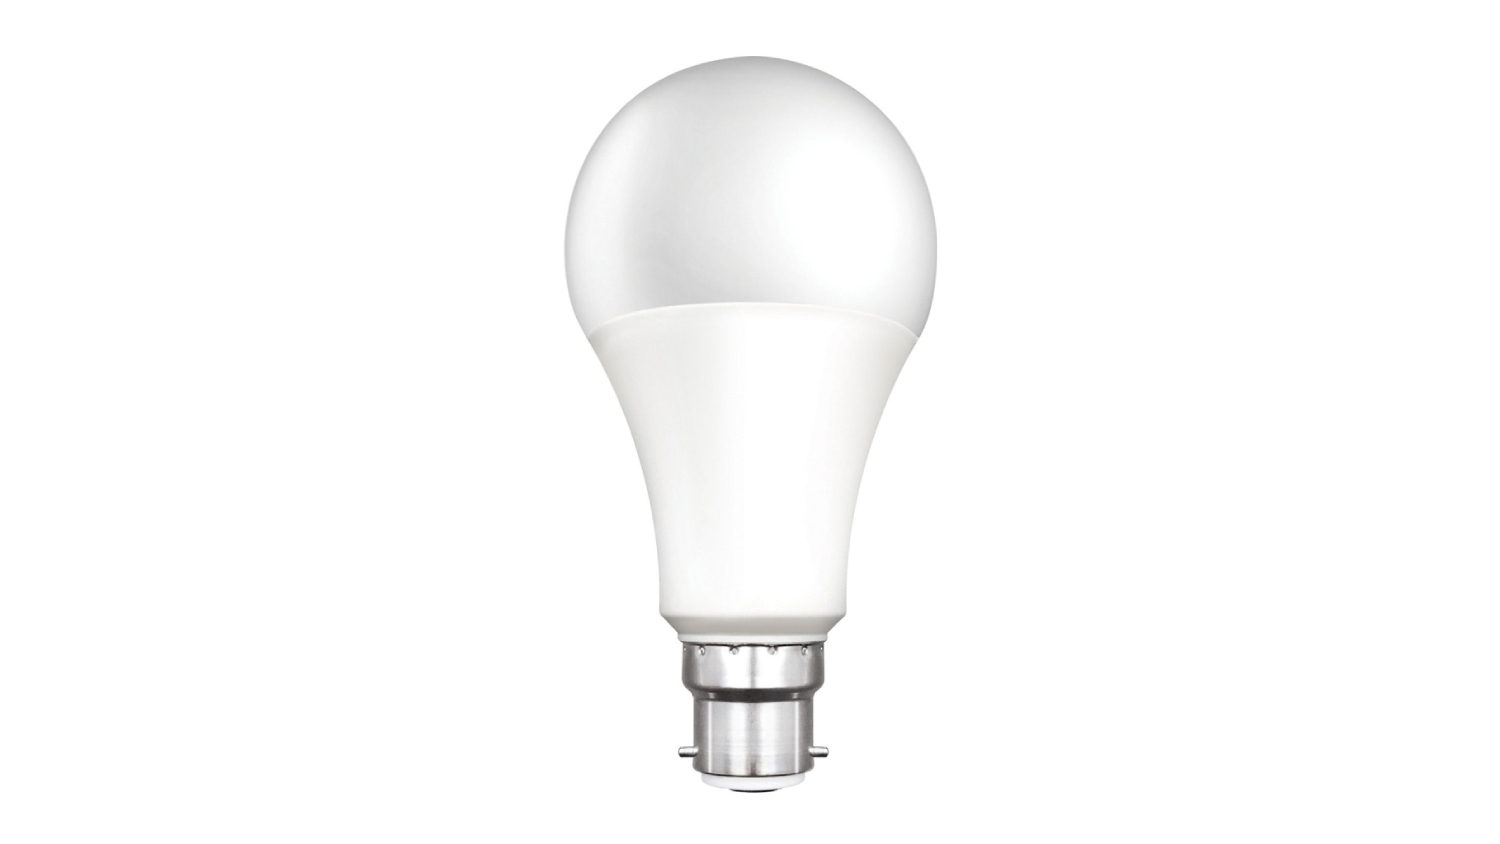 Connect Smart 10w B22 White Led Light Bulb Bayonet Harvey Norman New Zealand